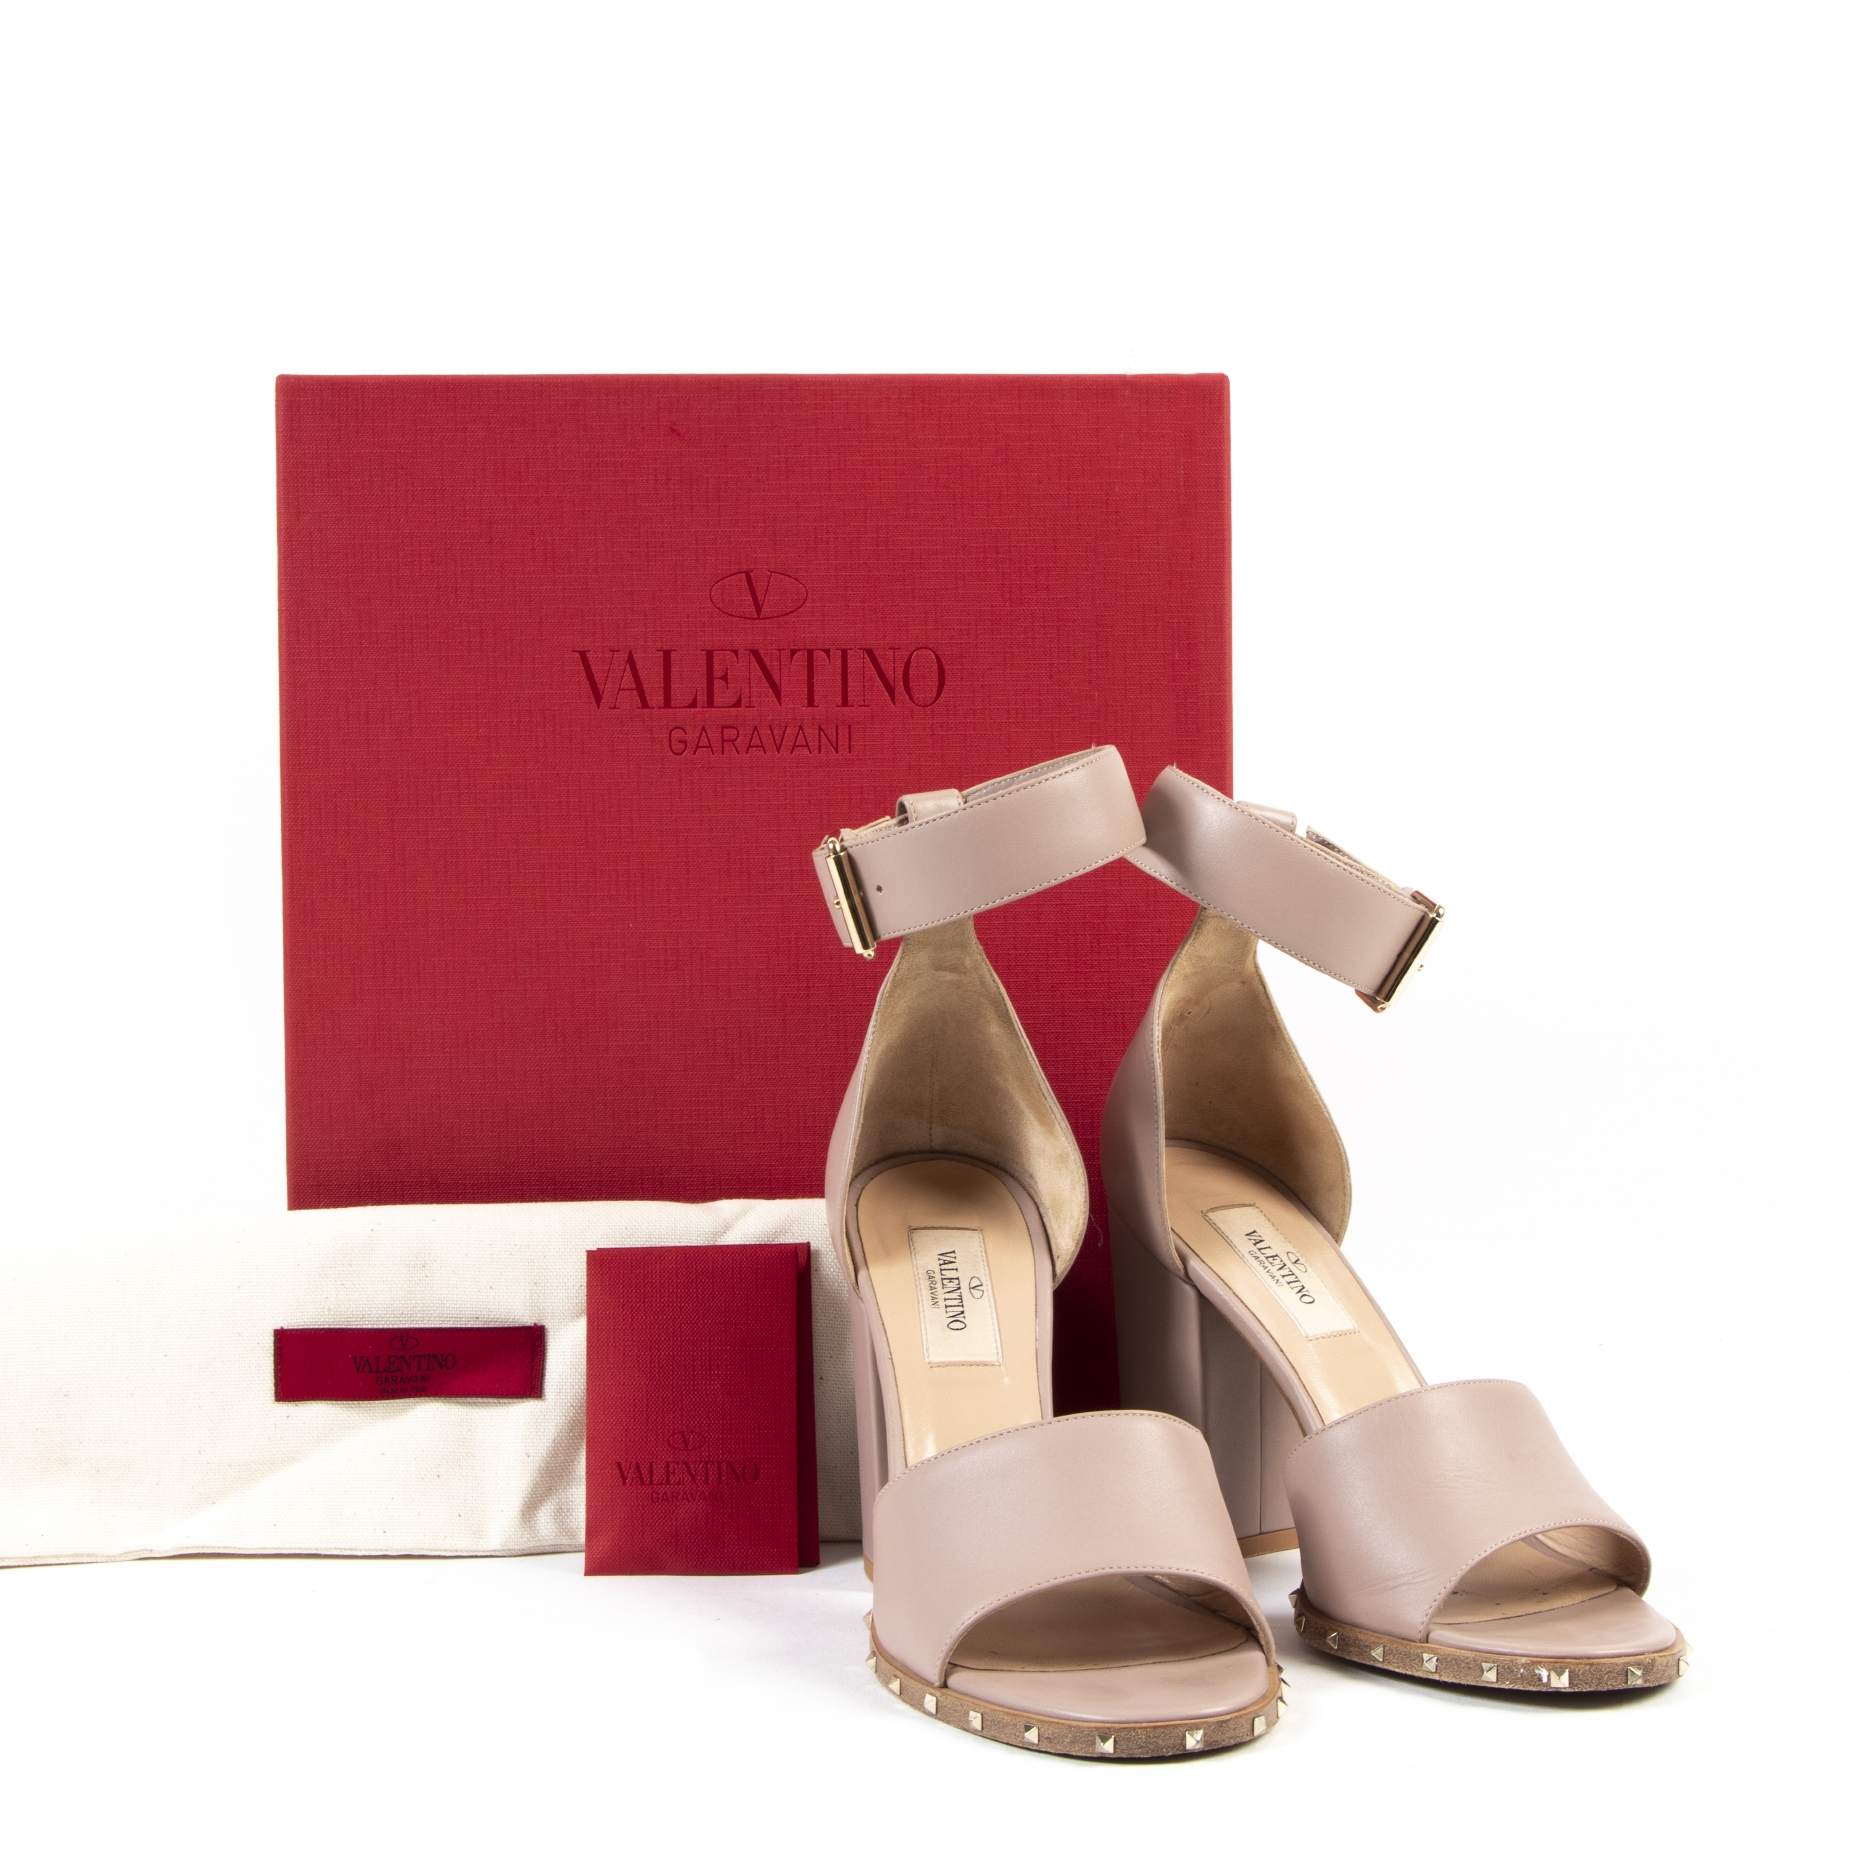 Valentino Garavani Poudre Block Heel Sandals complete with box availale now